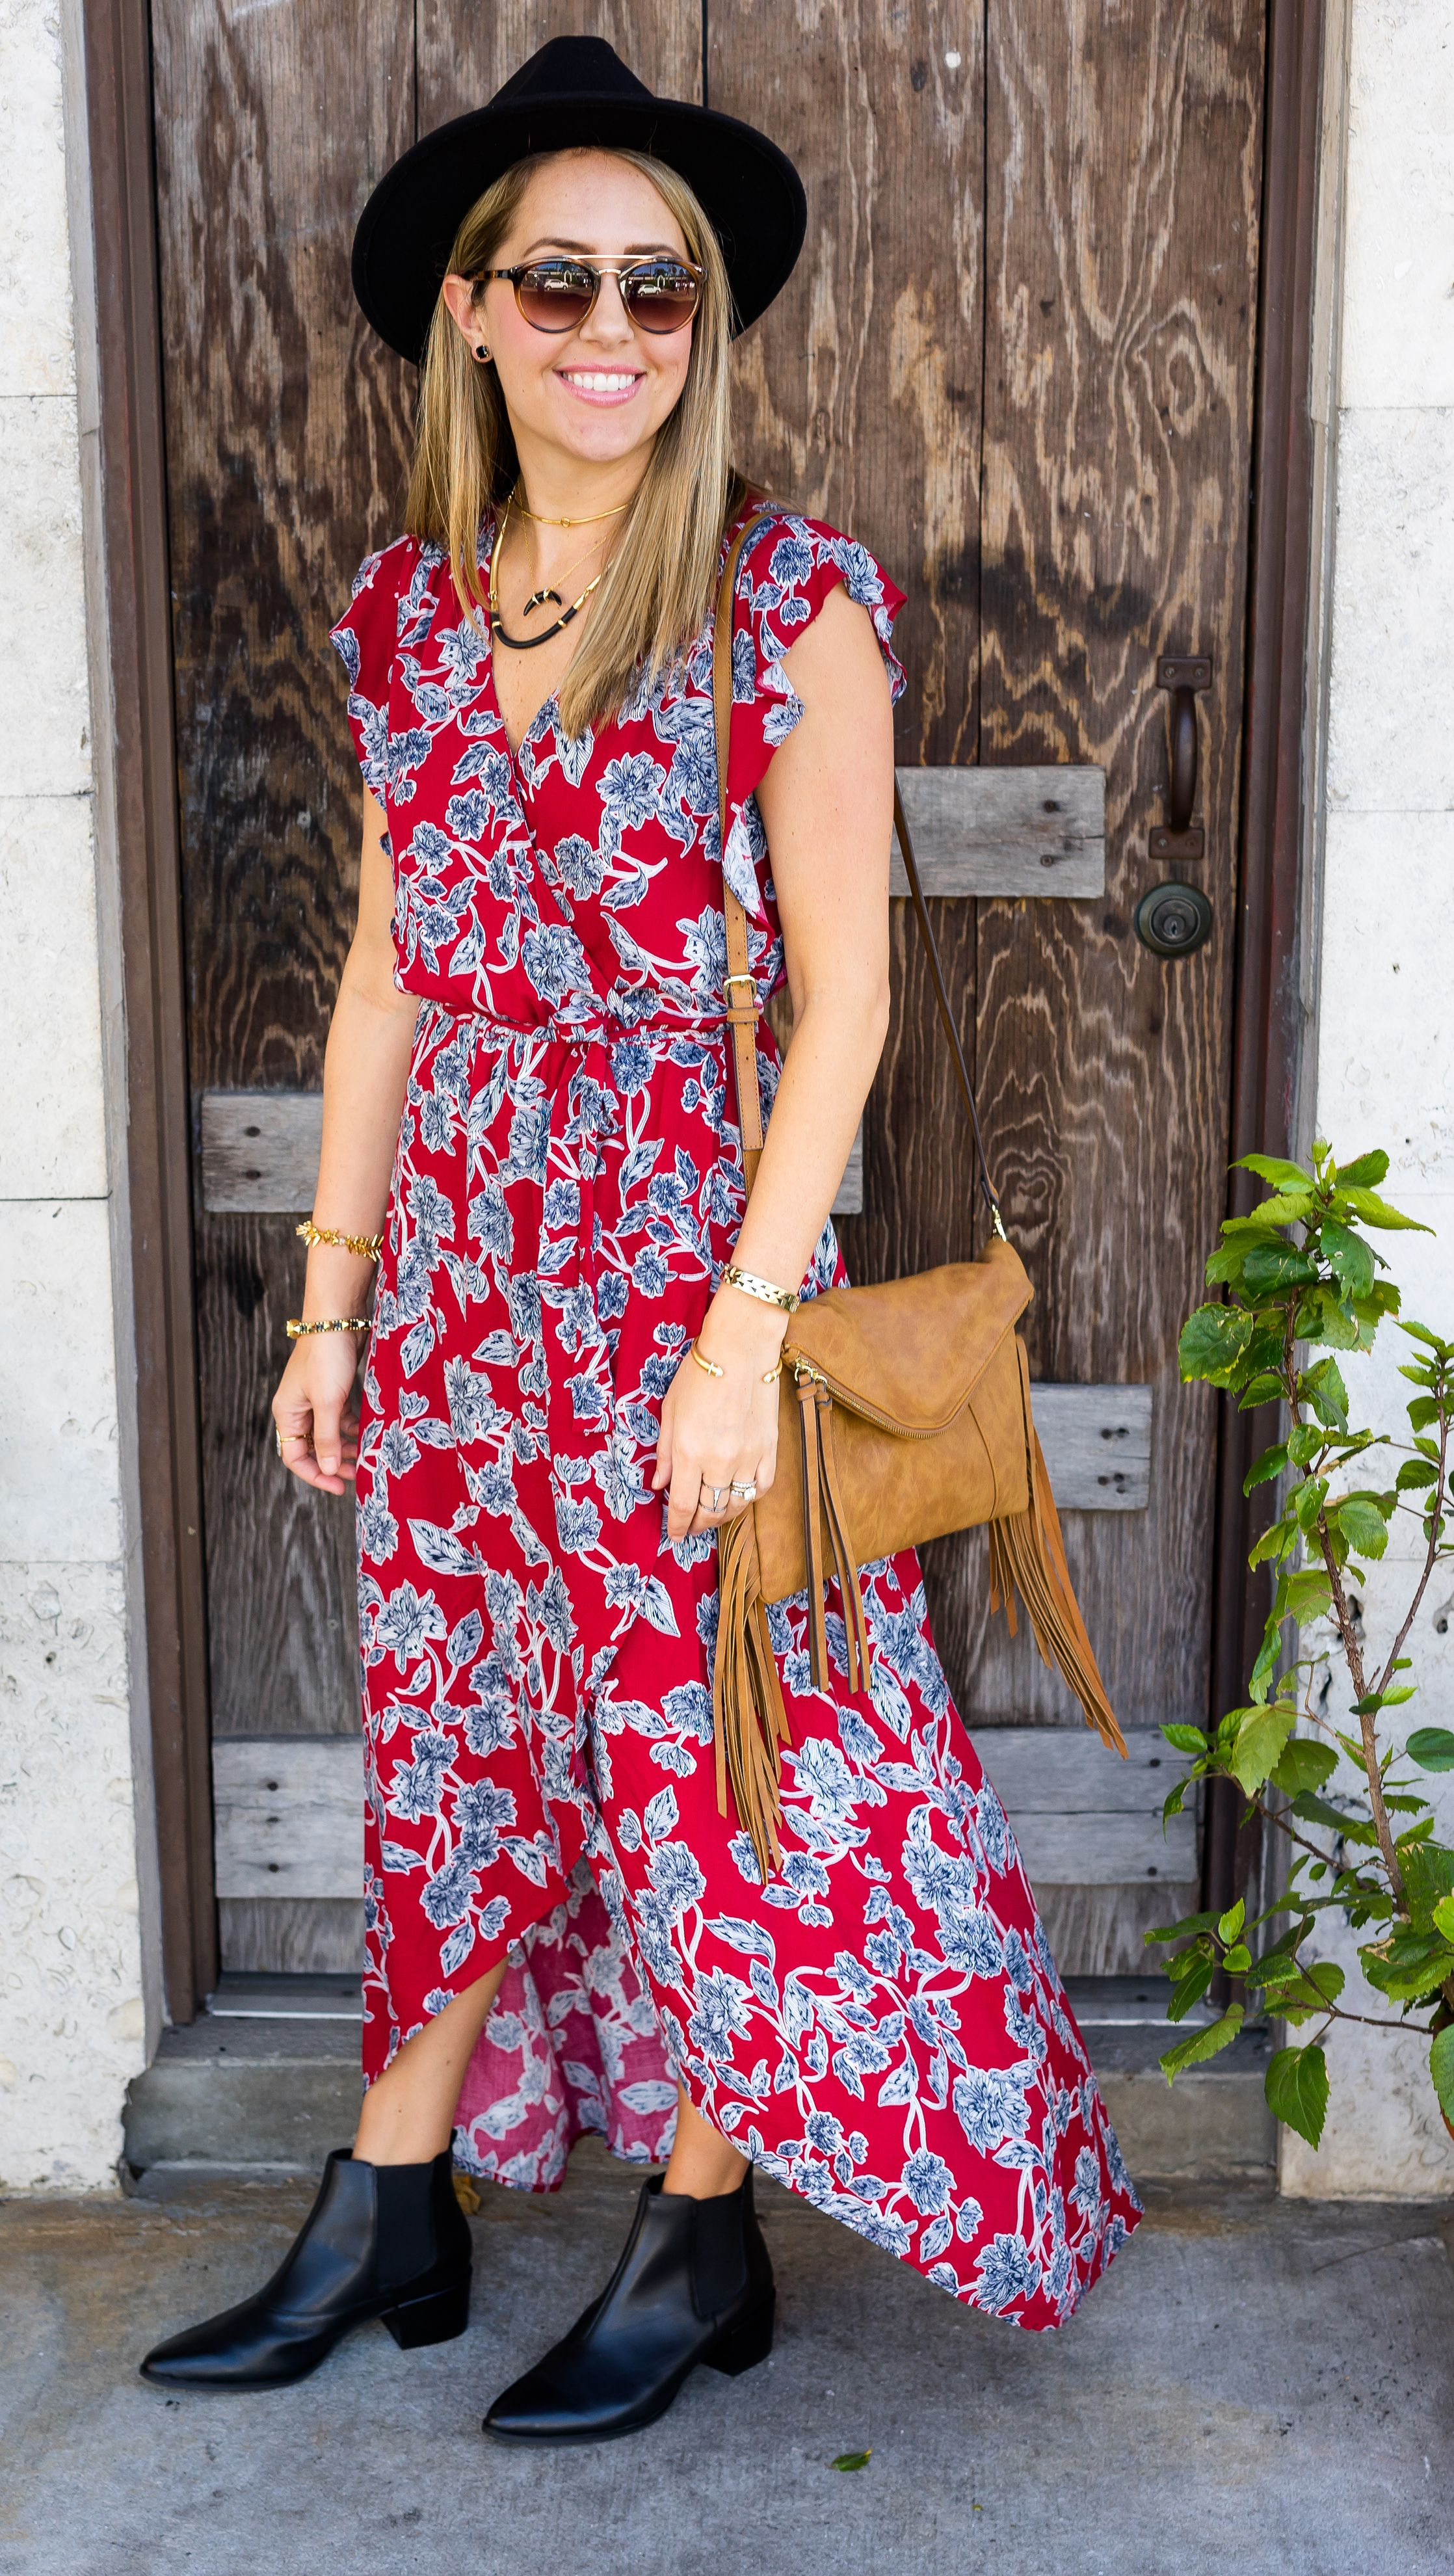 8ce215d8 Floral maxi dress, black ankle boots from Stitch Fix. #ad // I never  would've tried this dress on my own, but now it's one of my favorite things  in my ...